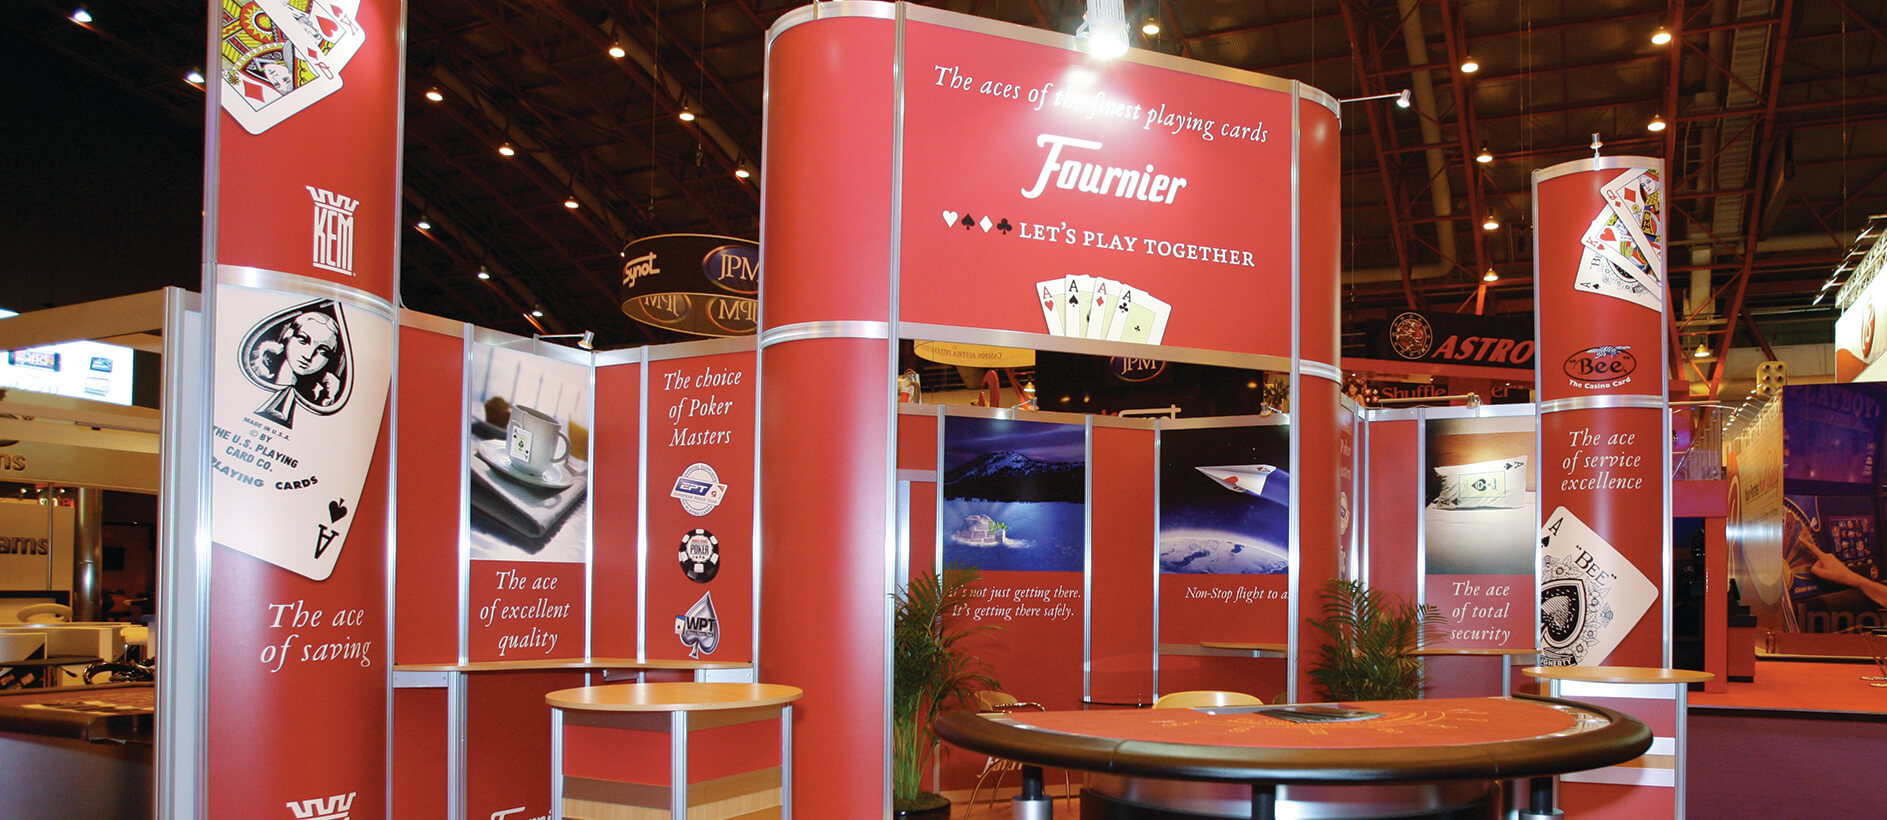 Modular exhibition stand with graphics and branding